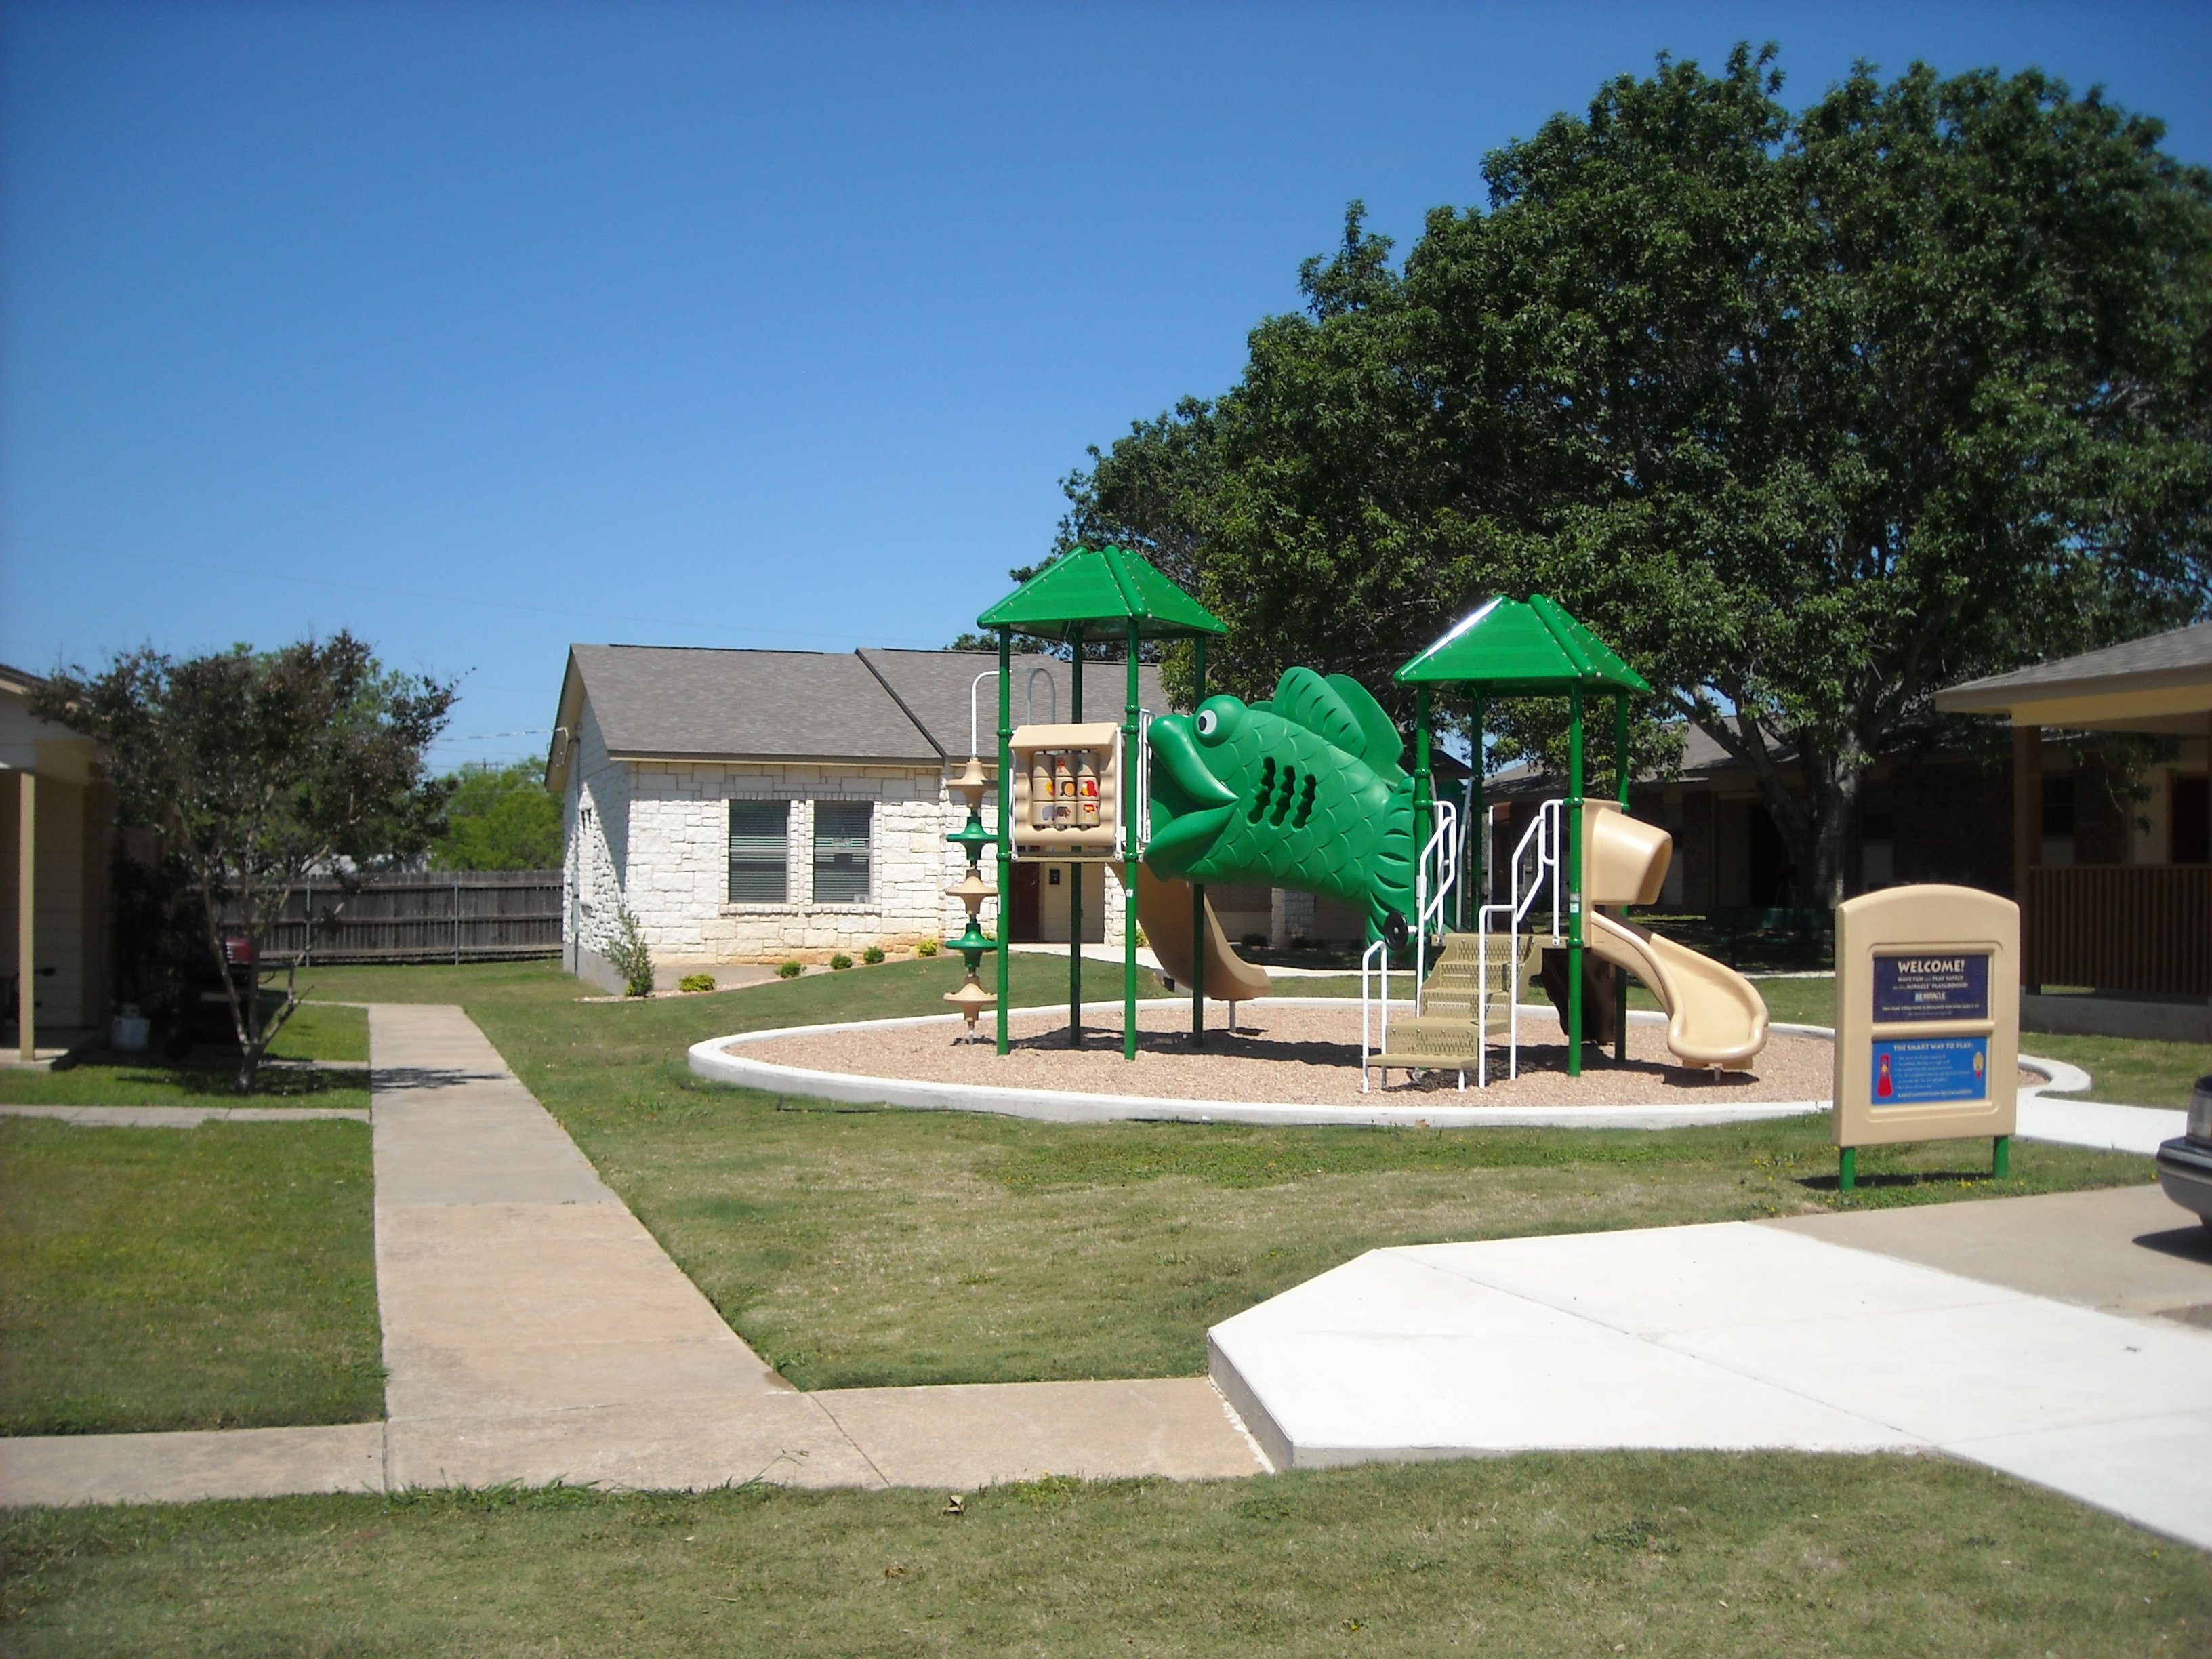 Northgate Apartments Playground